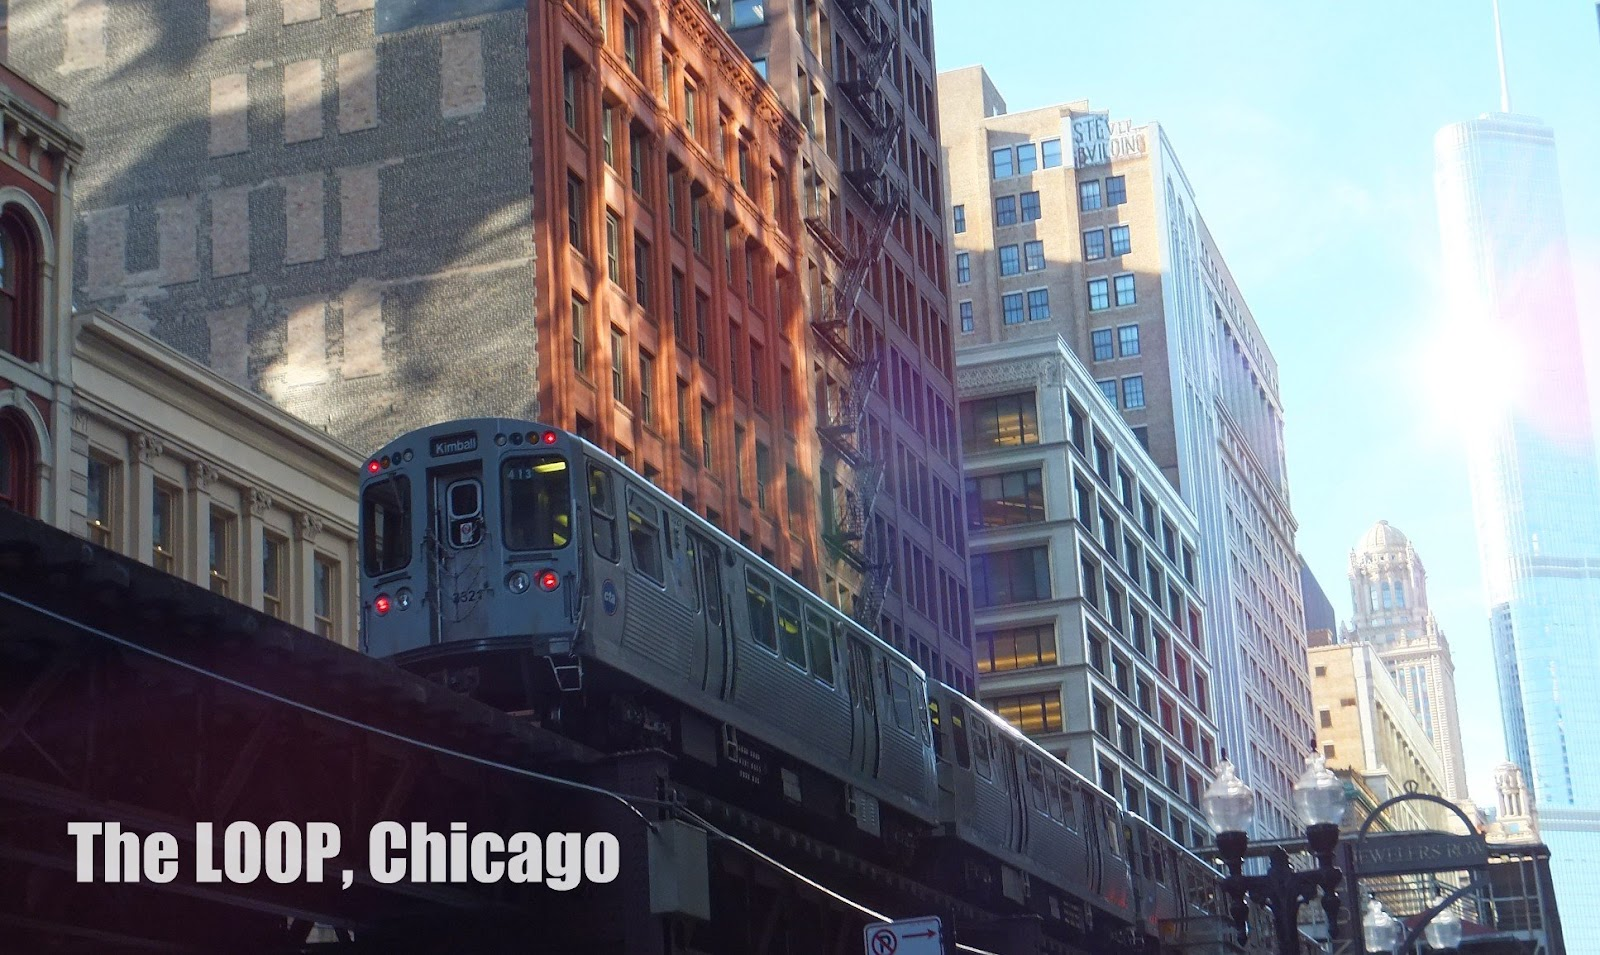 The Loop, Chicago, Elisa N, Blog de Viajes, Lifestyle, Travel